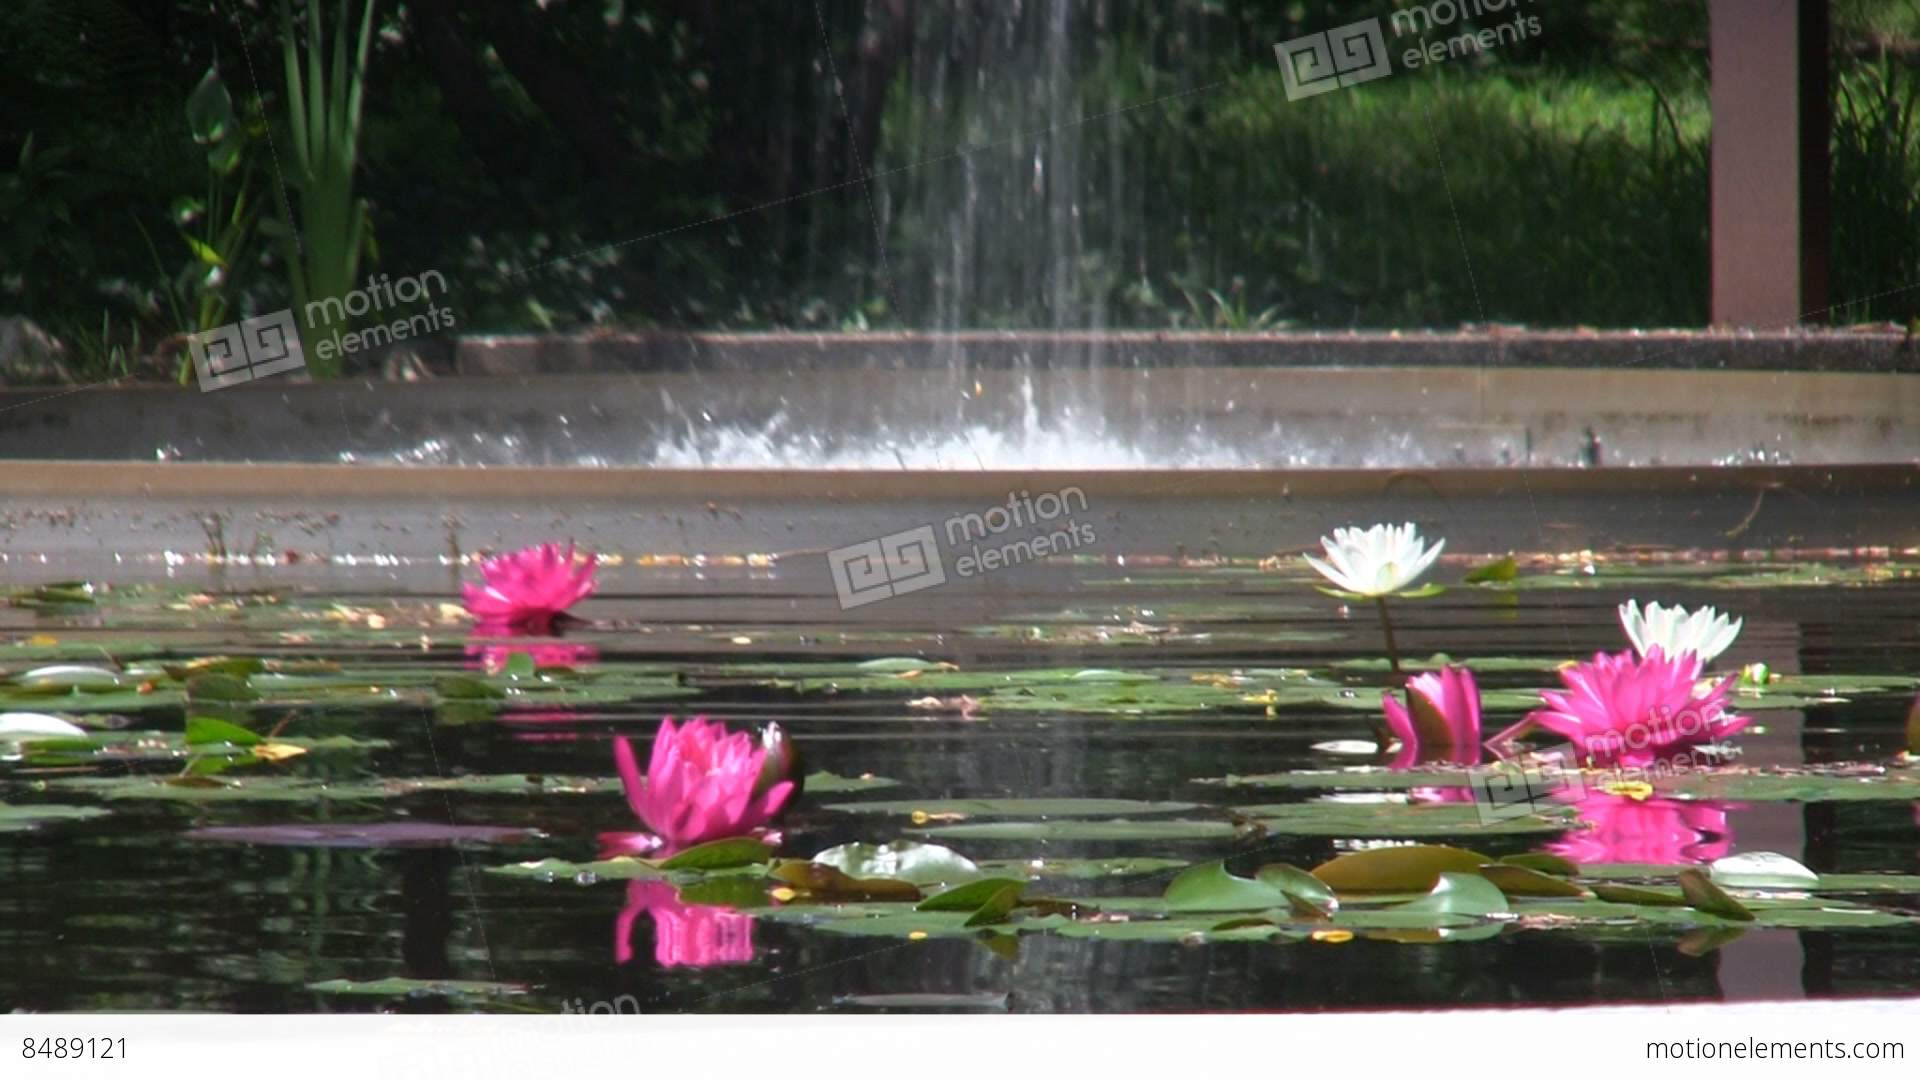 Flume fountain waterfall lands in oval pool of lotus flowers at flume fountain waterfall lands in oval pool of lotus stock video footage dhlflorist Images